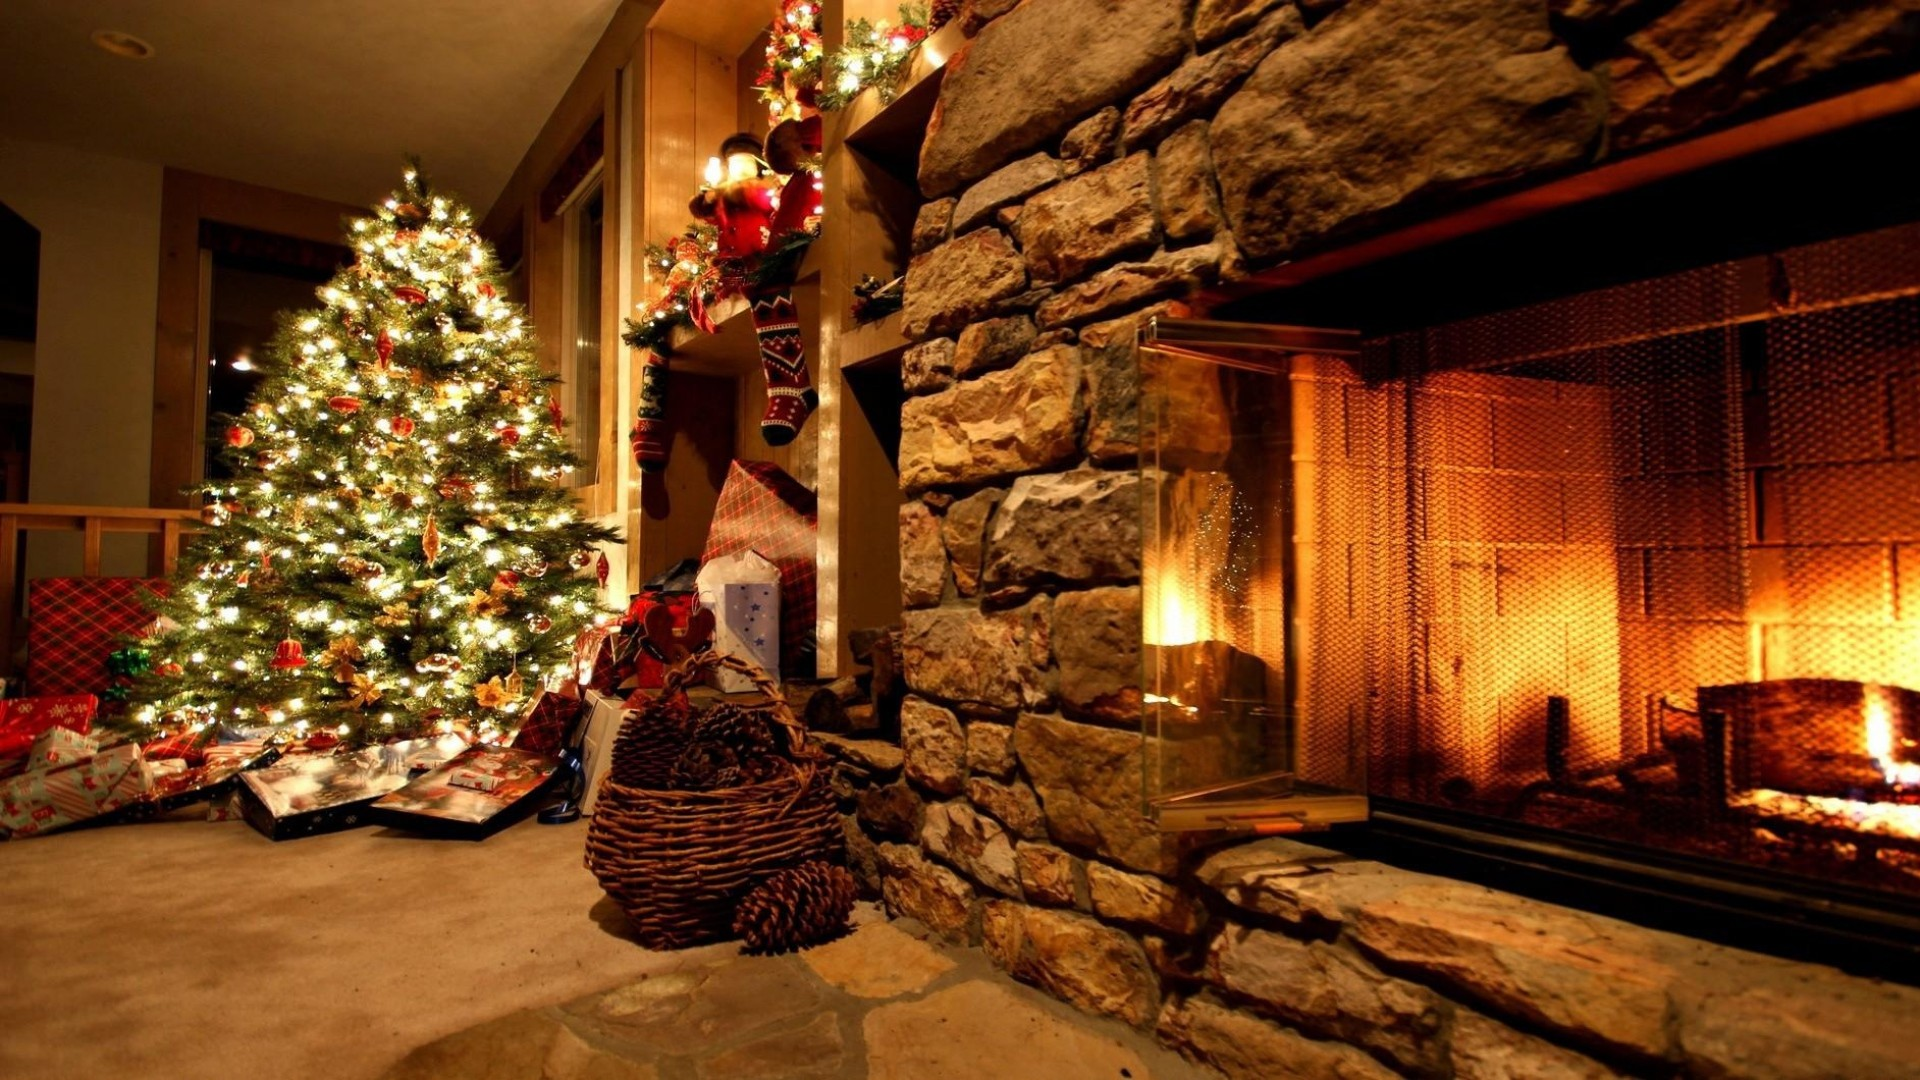 1920x1080  Wallpaper christmas tree, ornaments, fireplace, gifts, home,  cosiness, garland